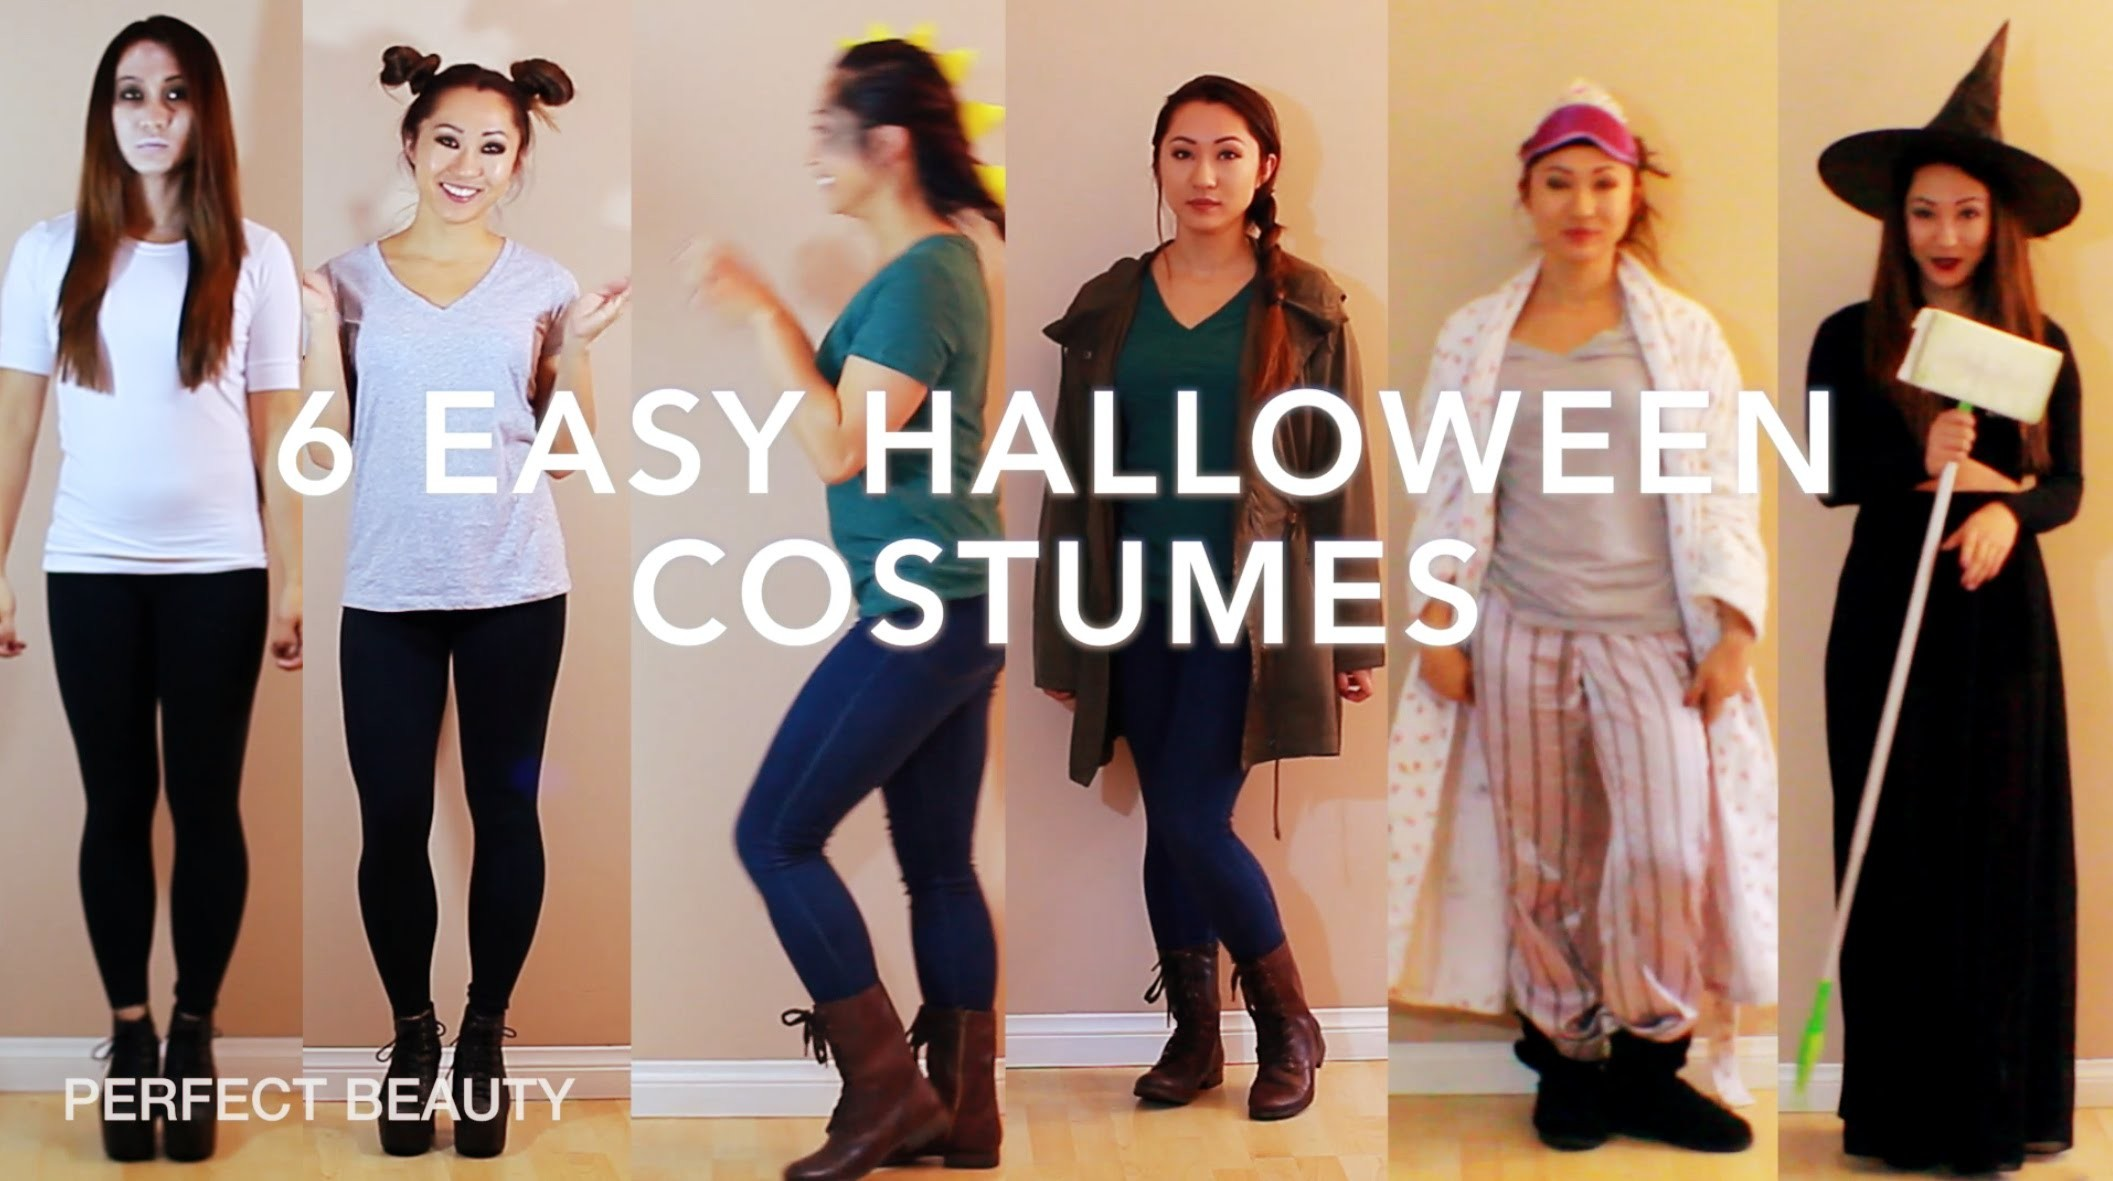 Last Minute! DIY Halloween Costume Ideas! PERFECT BEAUTY